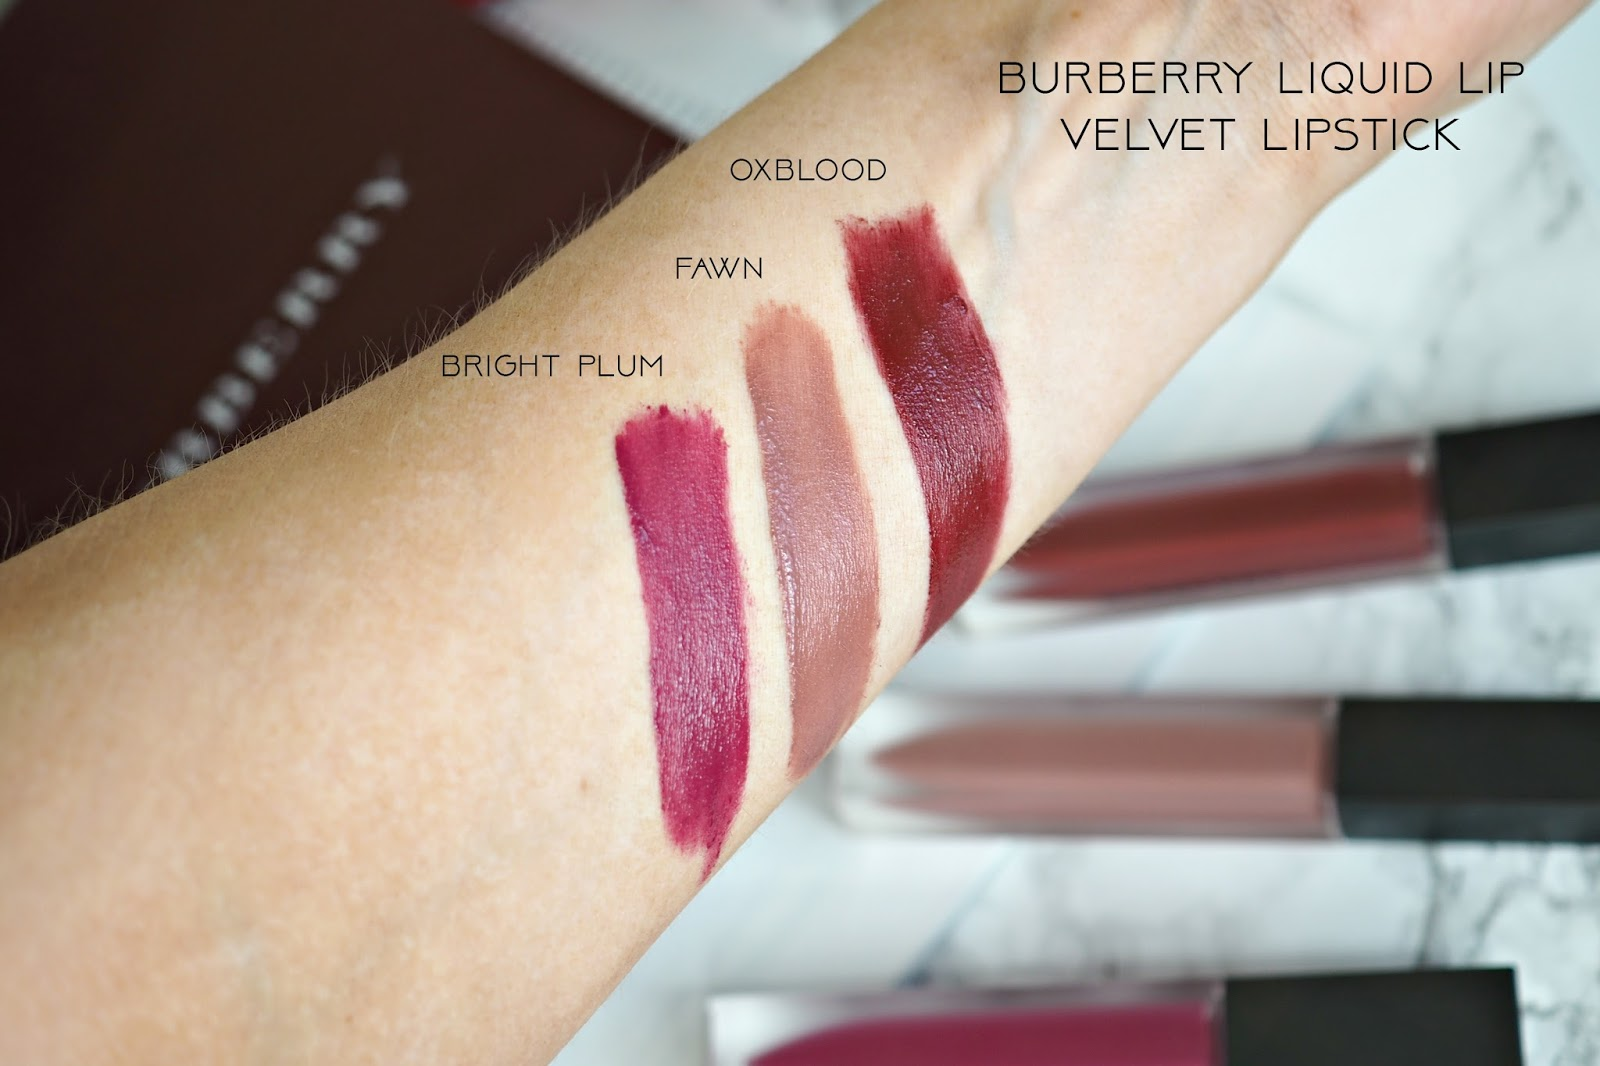 Burberry Liquid Lip Velvet Lipsticks swatches in oxblood, fawn and bright plum